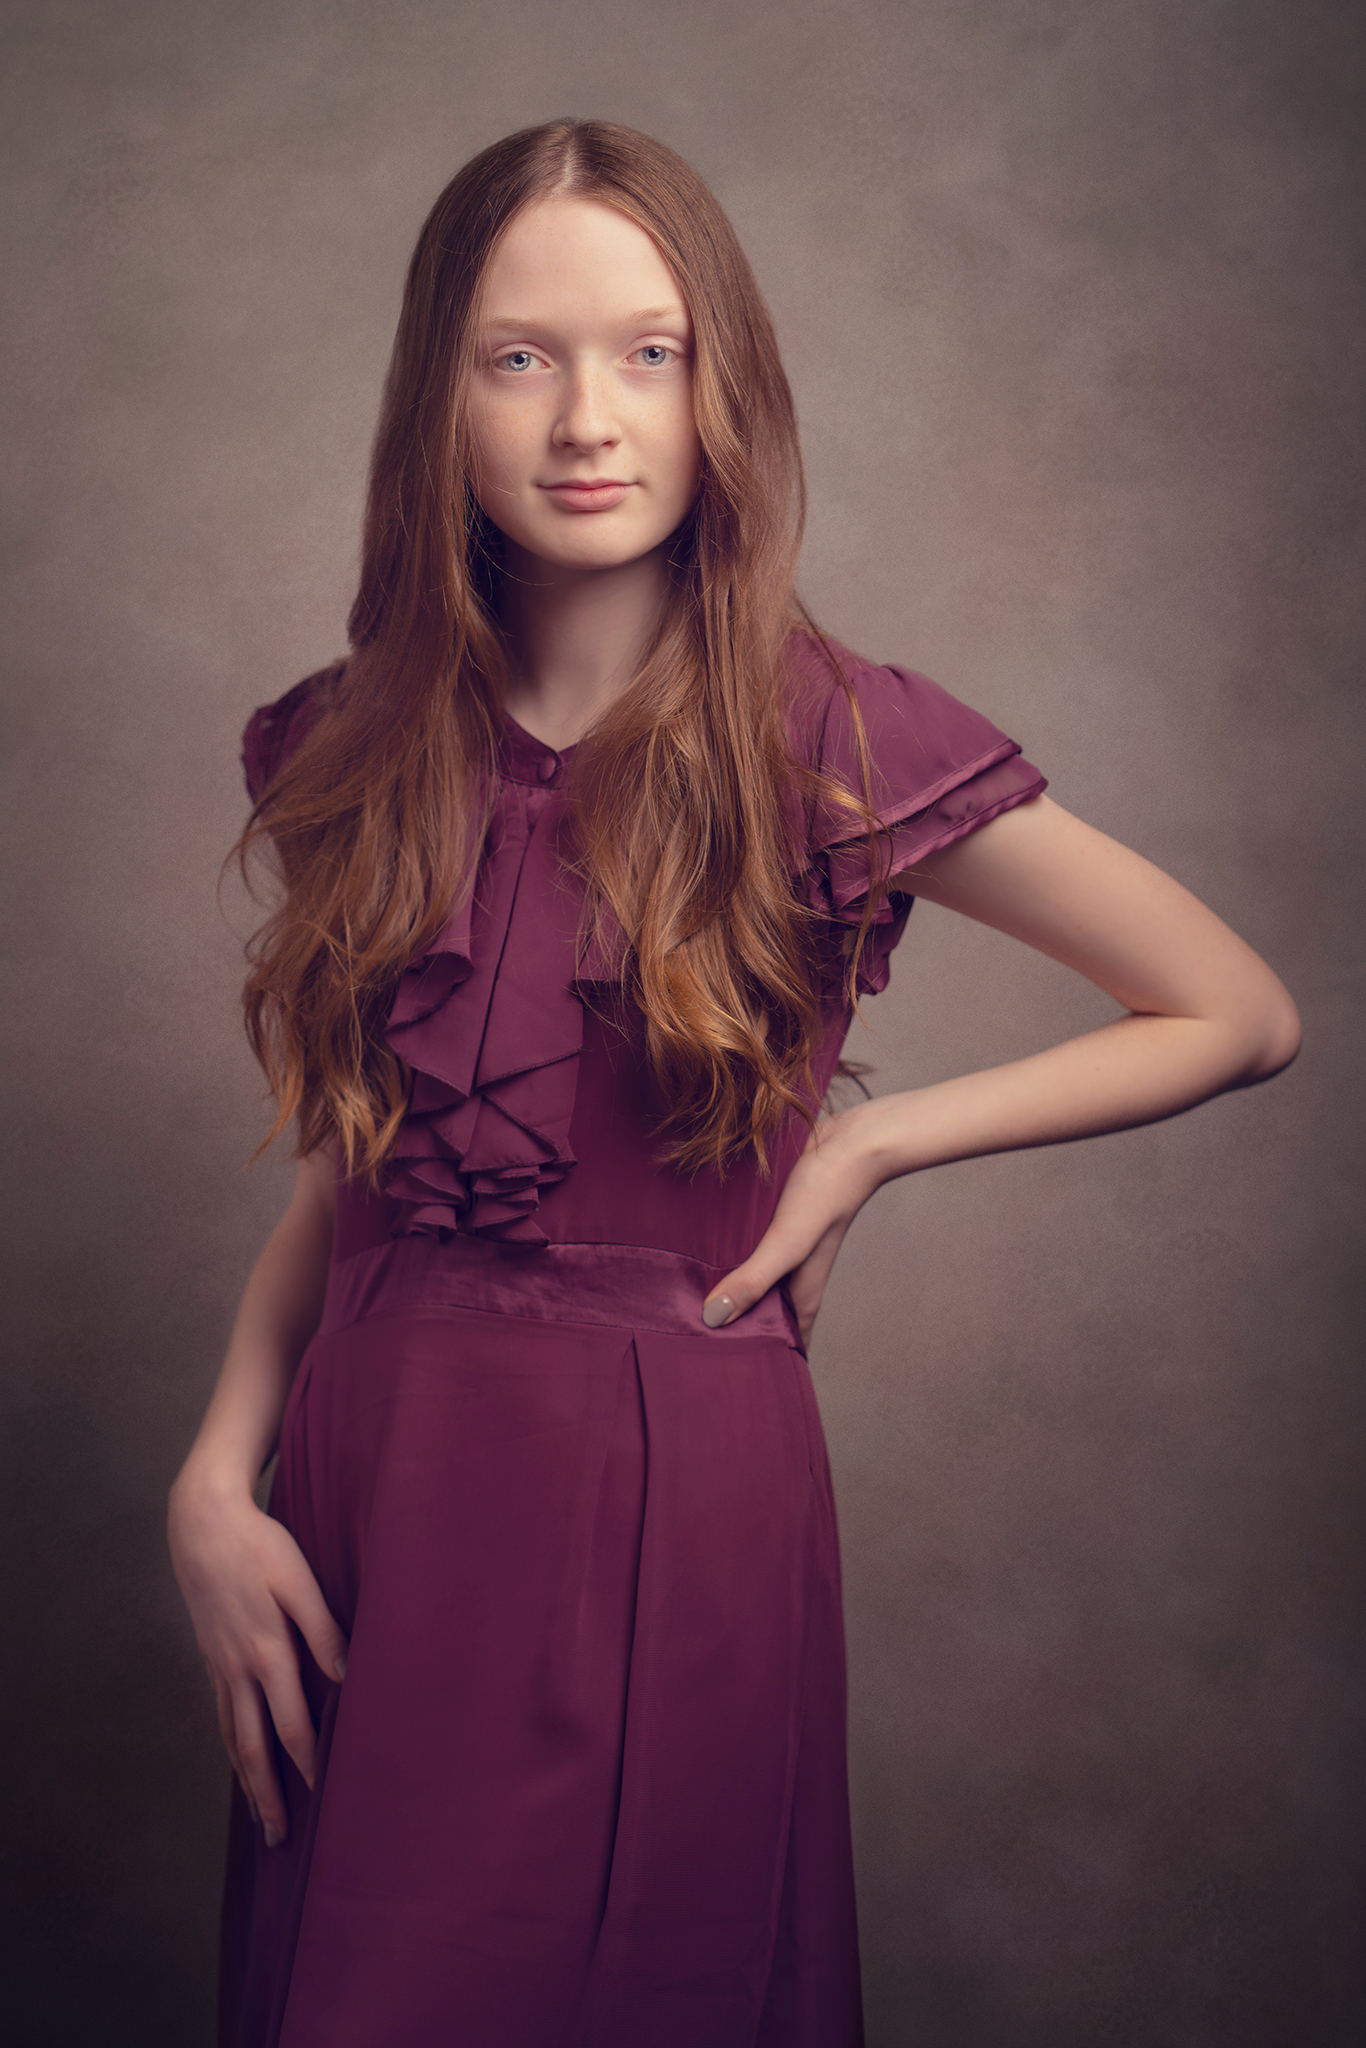 red haired model studio photograph by Portrait photographer Preston